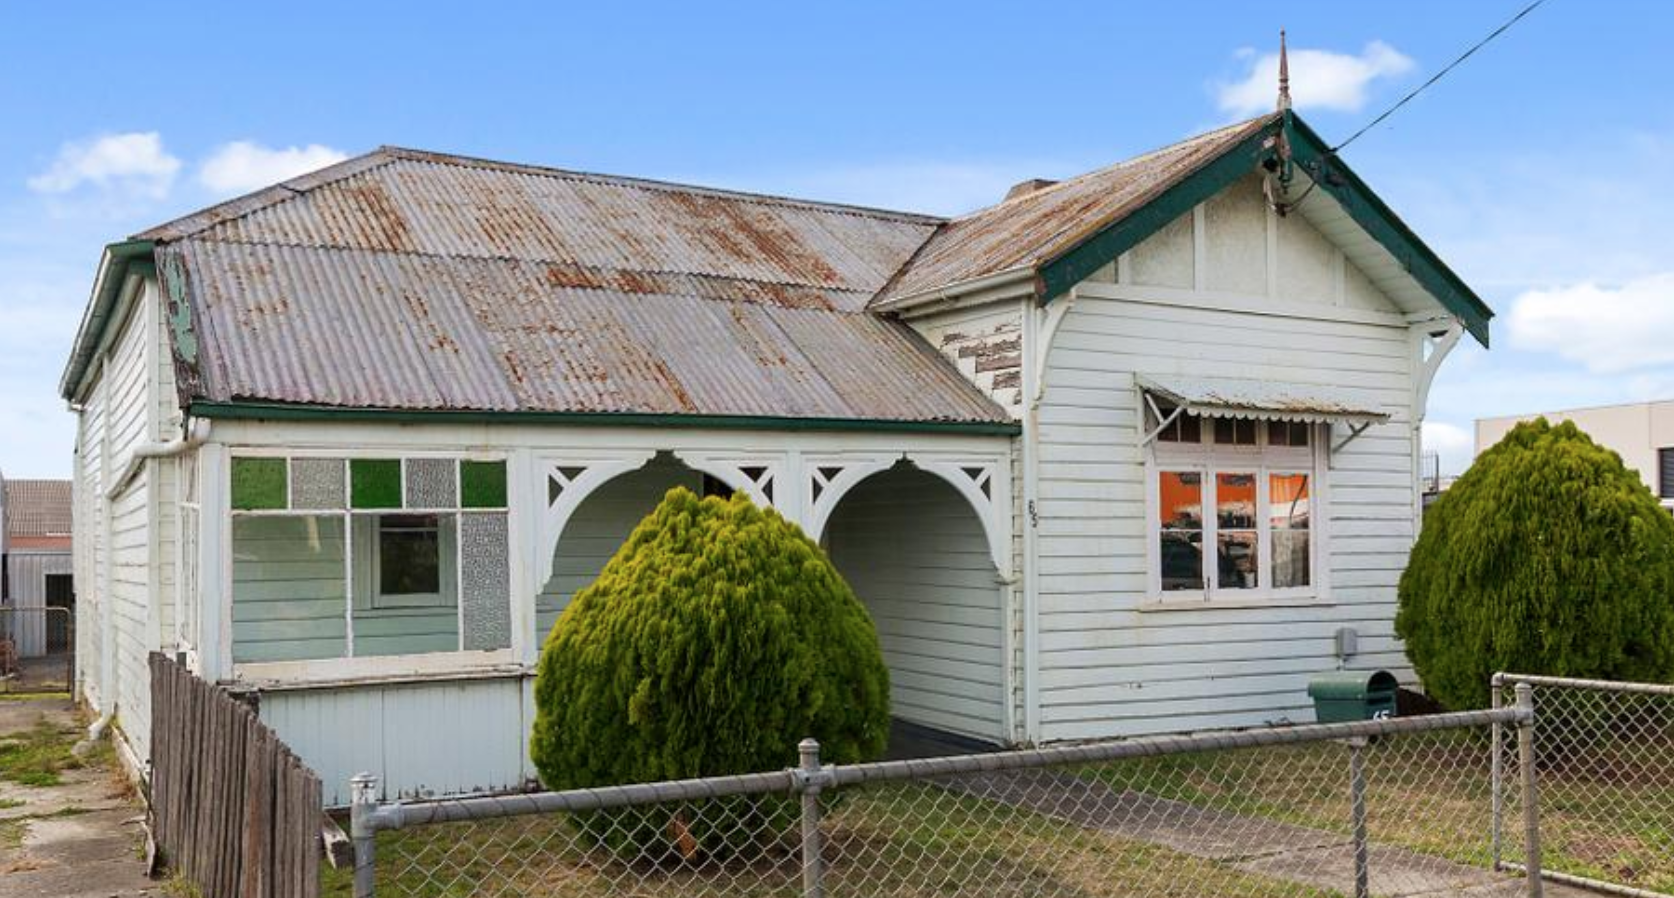 Hobart: get a historic home with a bit of loose change